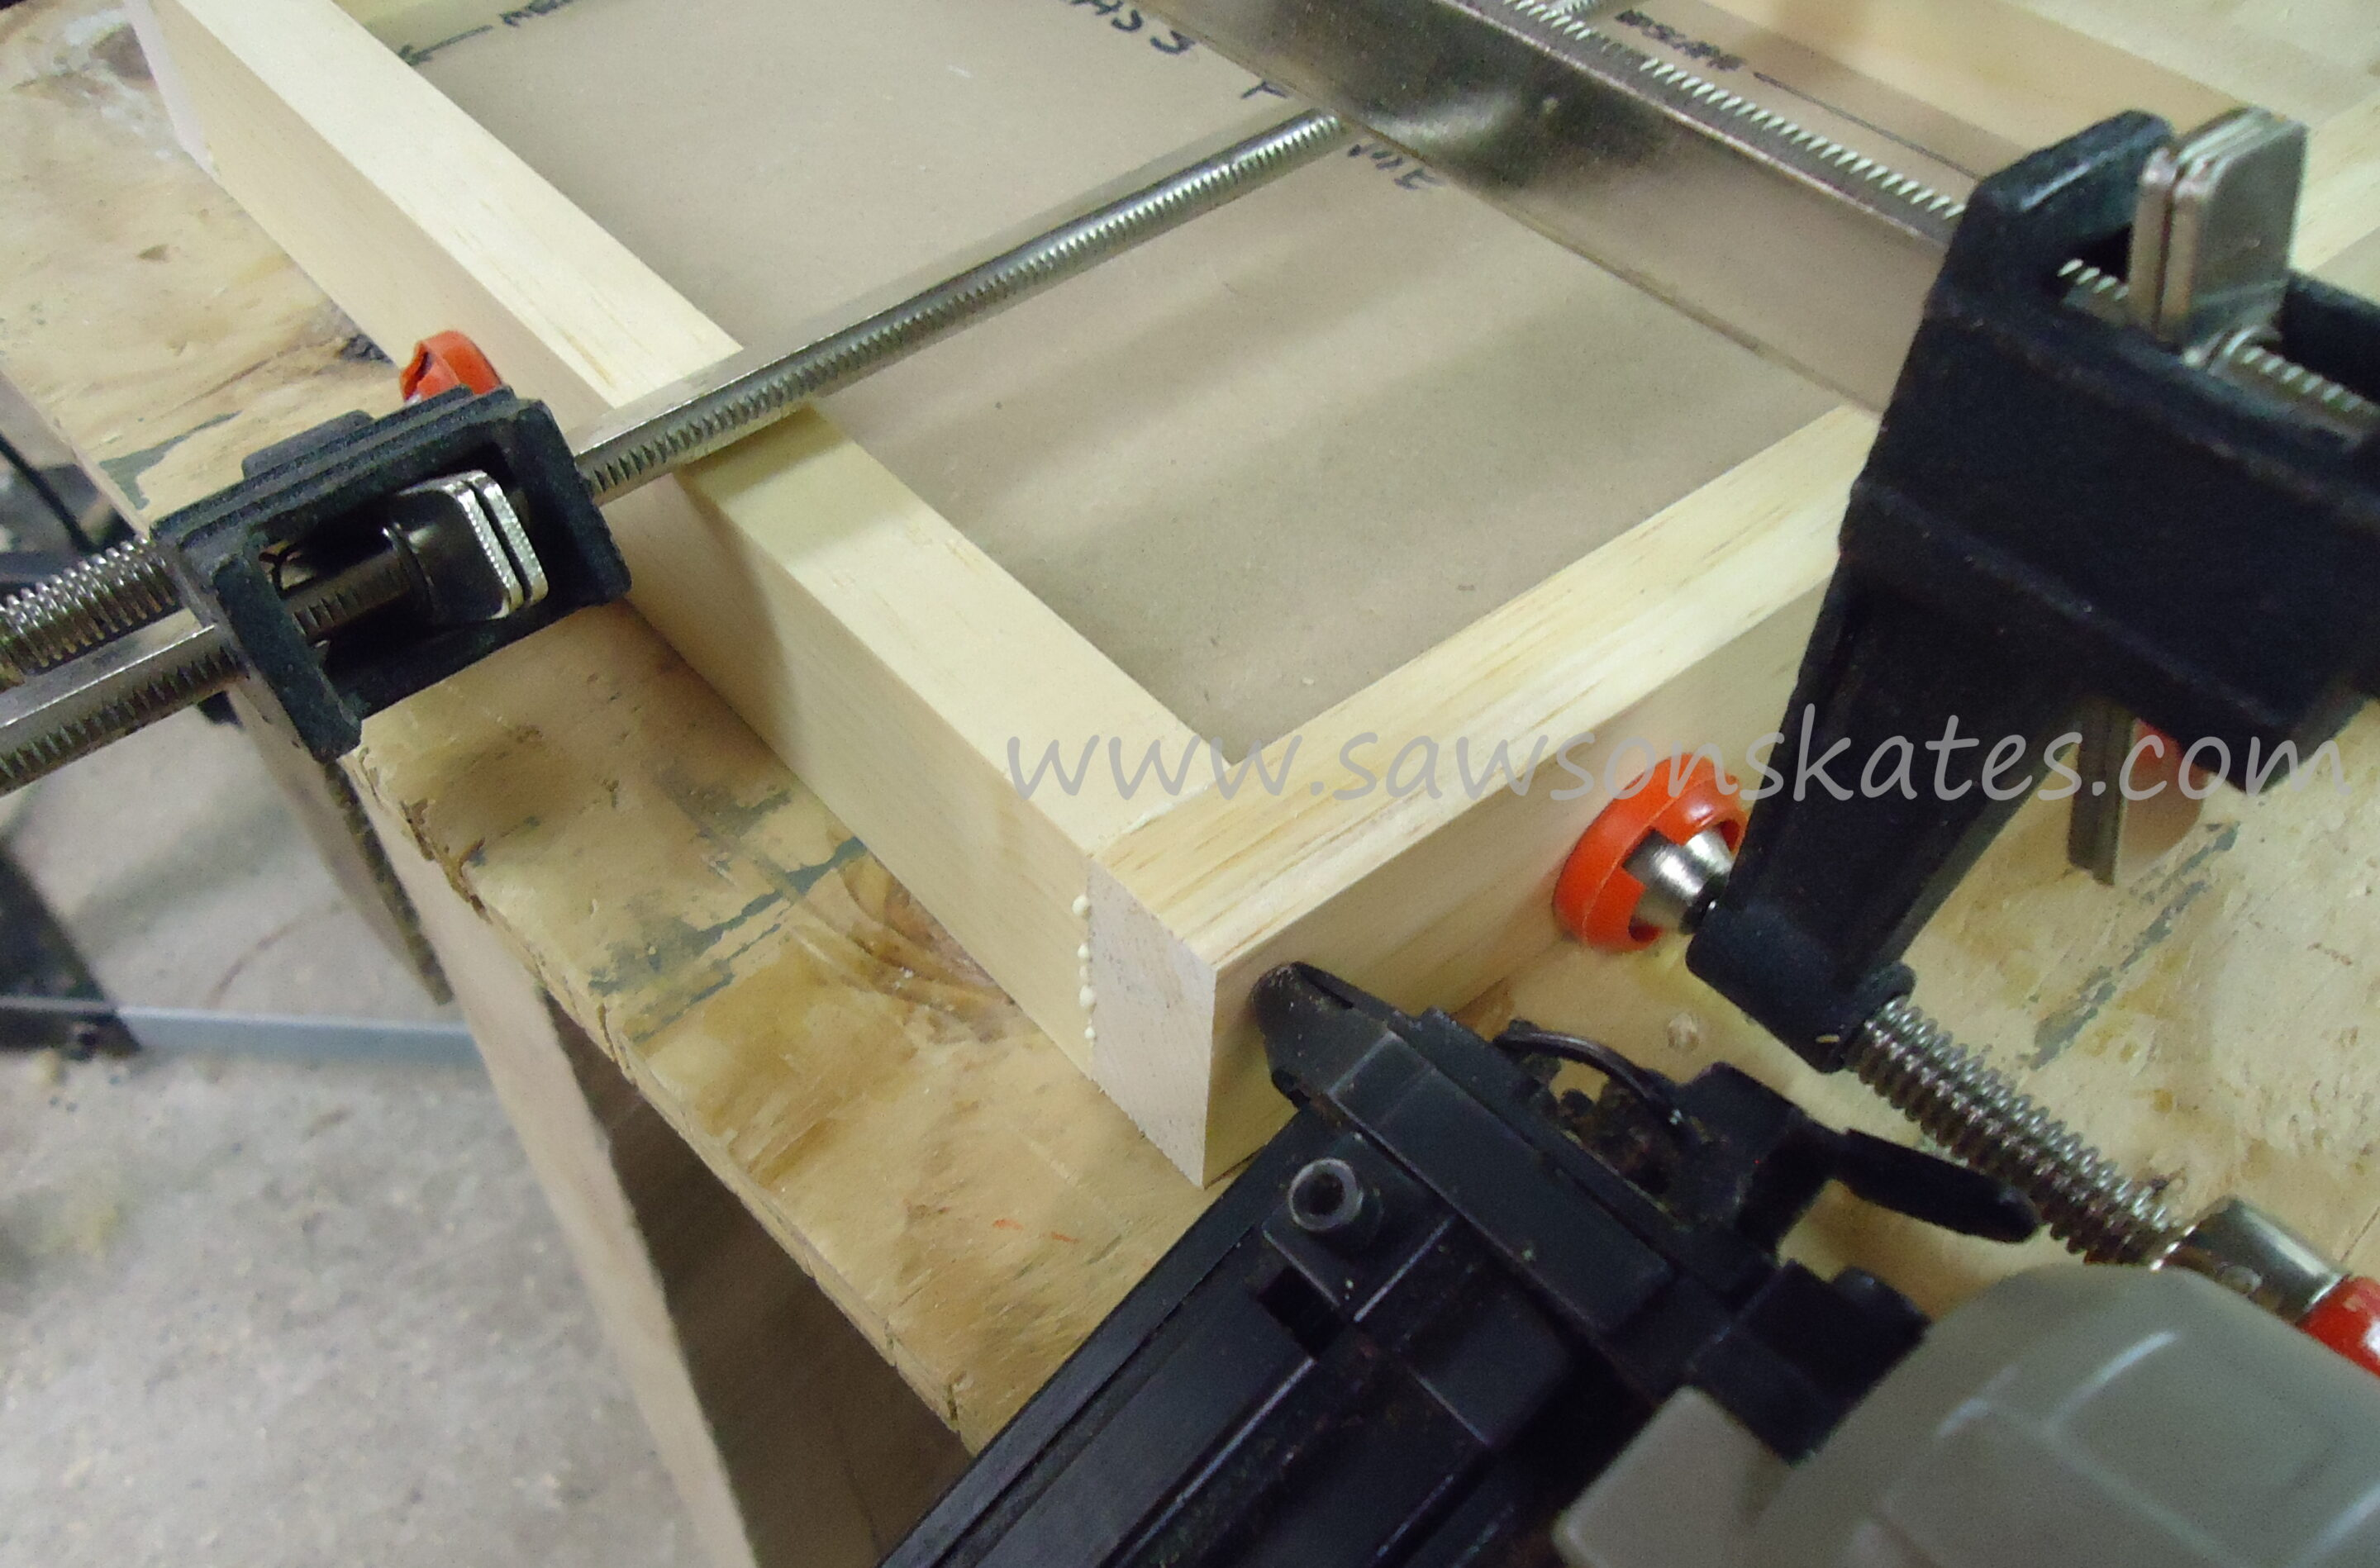 Diy no miter cut picture frame step 8 pre drill counter sink holes on the back of the glass frame attach to face frame using glue and 2 wood screws glass frame should set in jeuxipadfo Choice Image